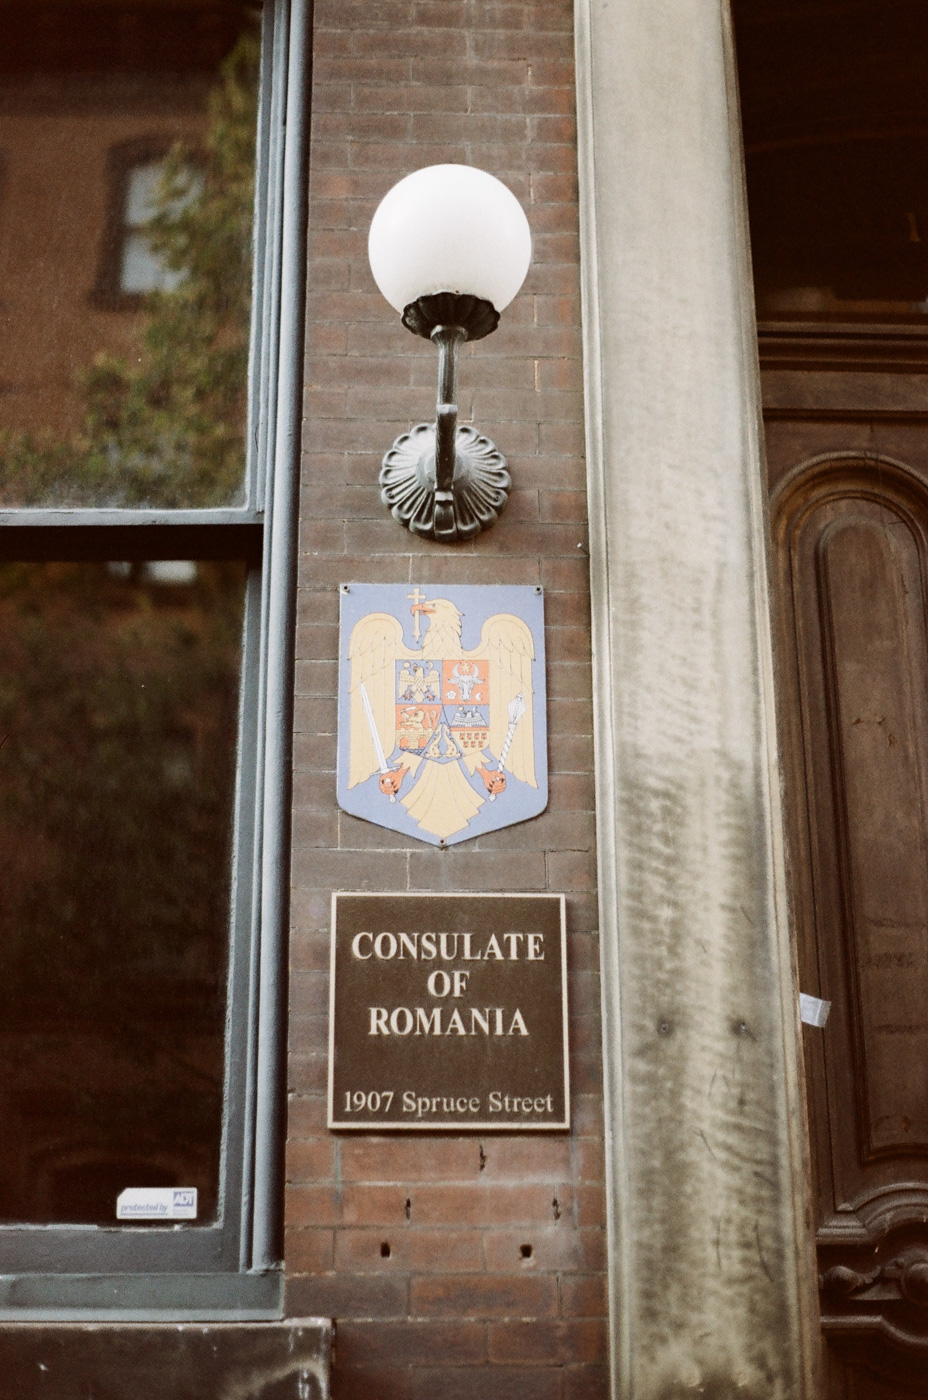 Consulate of Romania